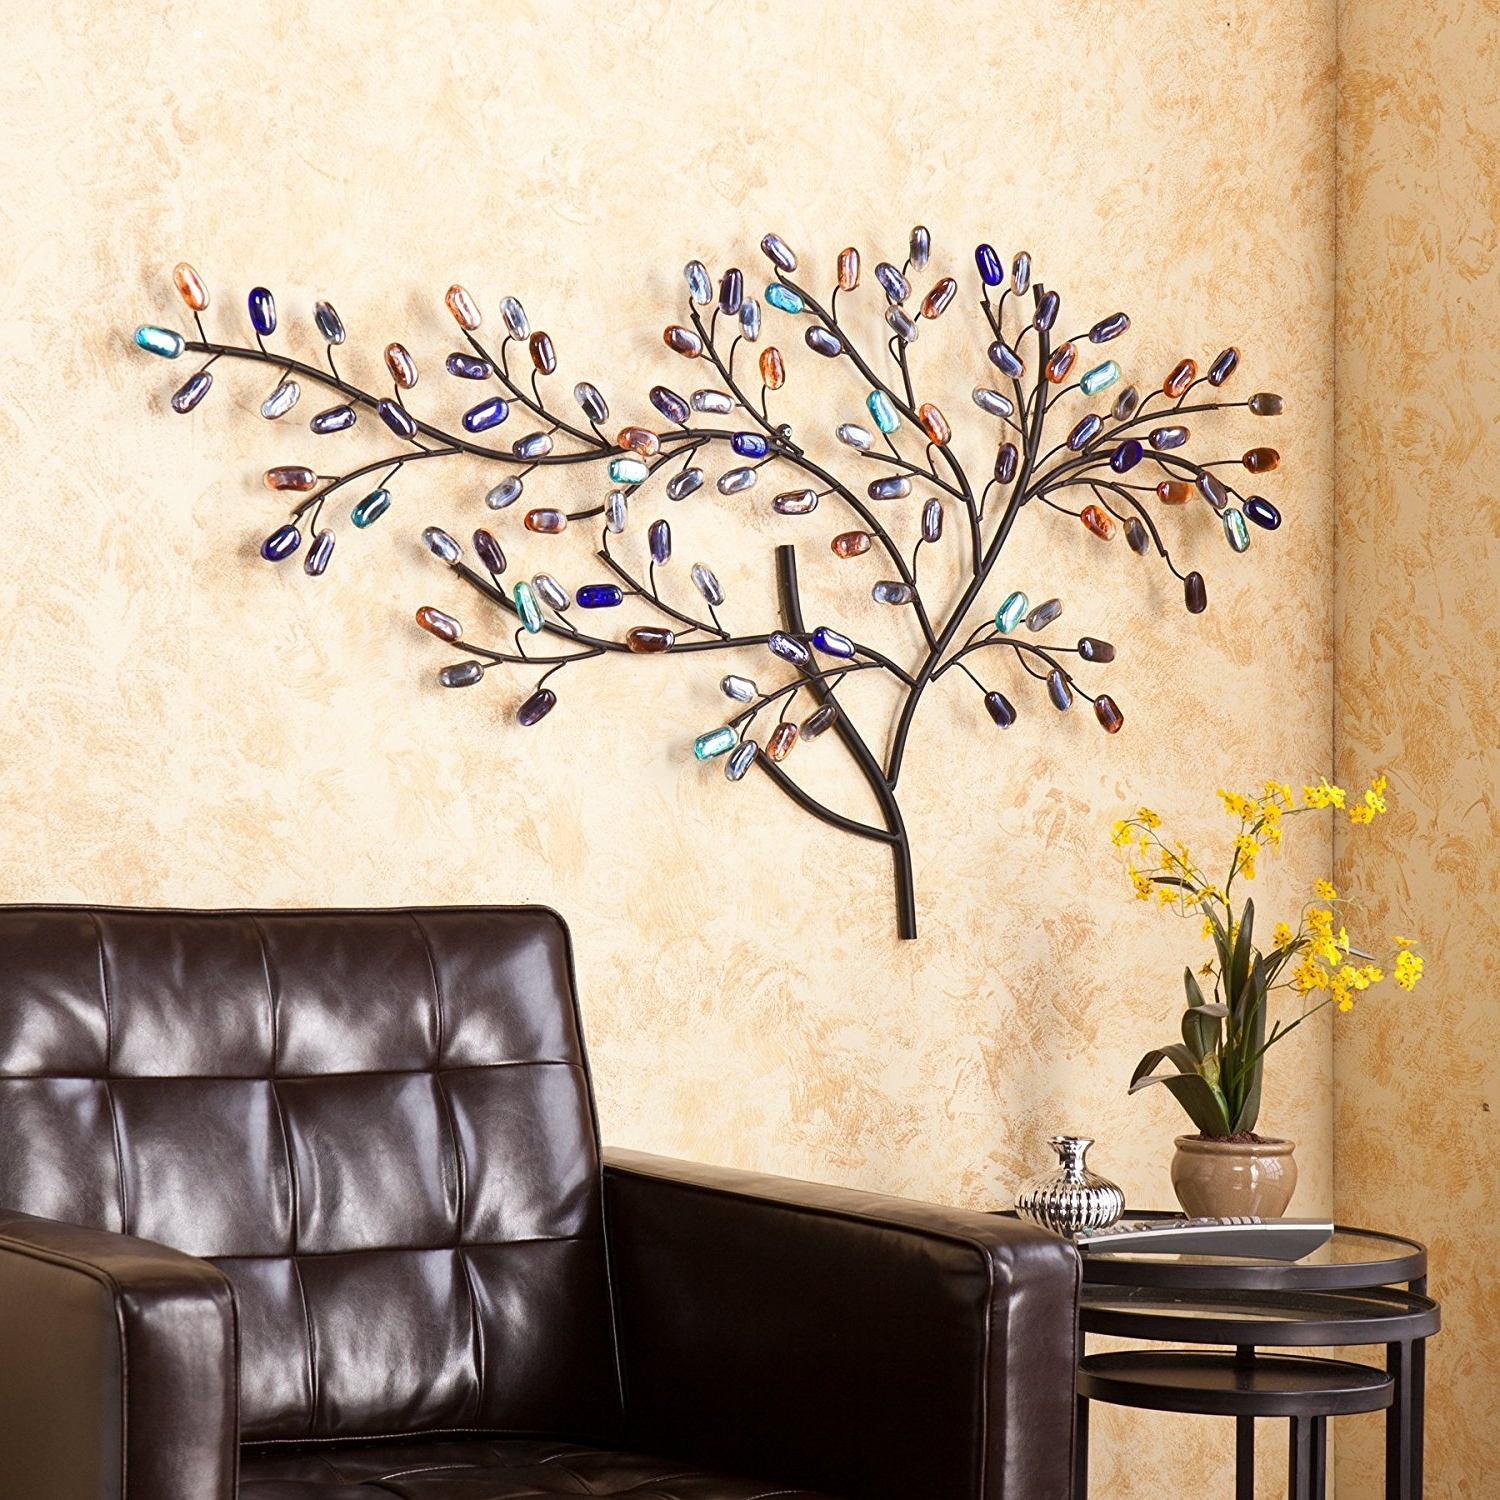 Well Liked Southern Enterprises Abstract Wall Art Intended For Tree Of Life Metal Wall Art Large Decoration With Branch And Leaves (View 15 of 15)